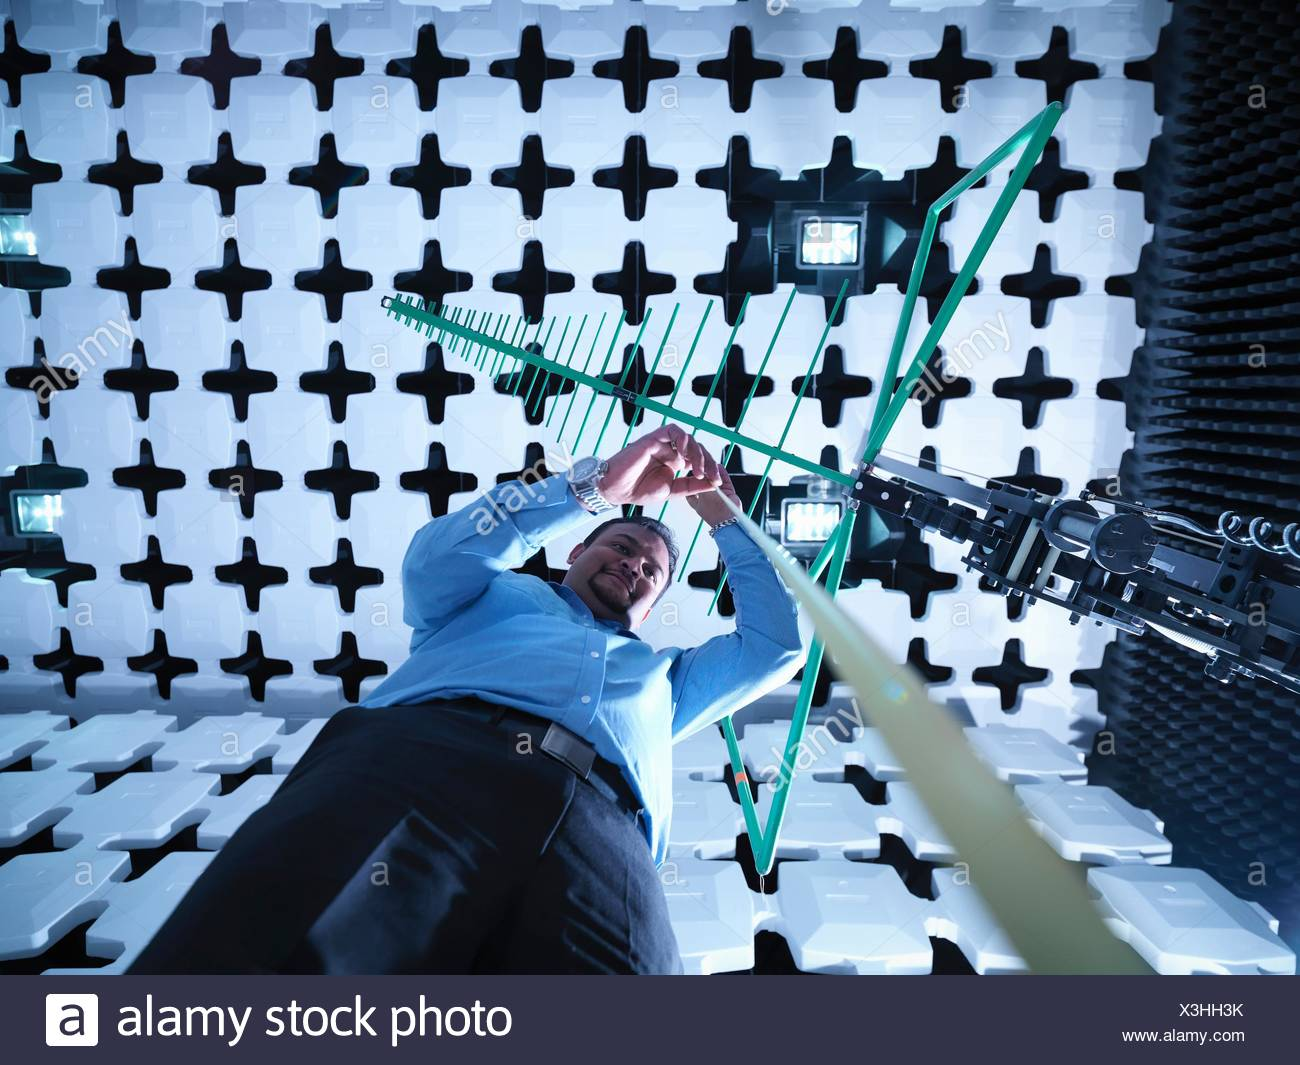 Engineer checking a bilog antenna's height for electromagnetic compatibility (EMC) radiated immunity testing in a semi anechoic chamber, low angle view - Stock Image